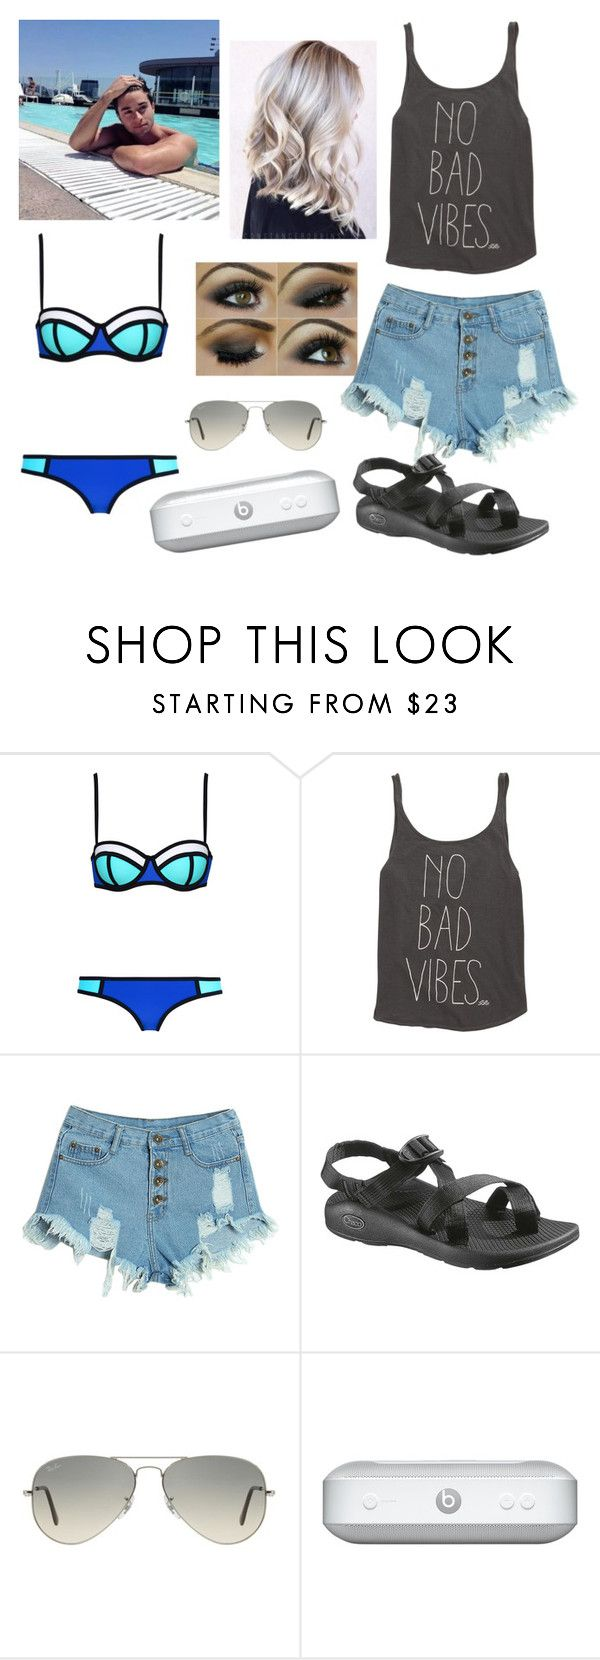 """""""Pool Day w/ Jake Miller#82"""" by tkcostner ❤ liked on Polyvore featuring Billabong, WithChic, Chaco, Ray-Ban, women's clothing, women, female, woman, misses and juniors"""